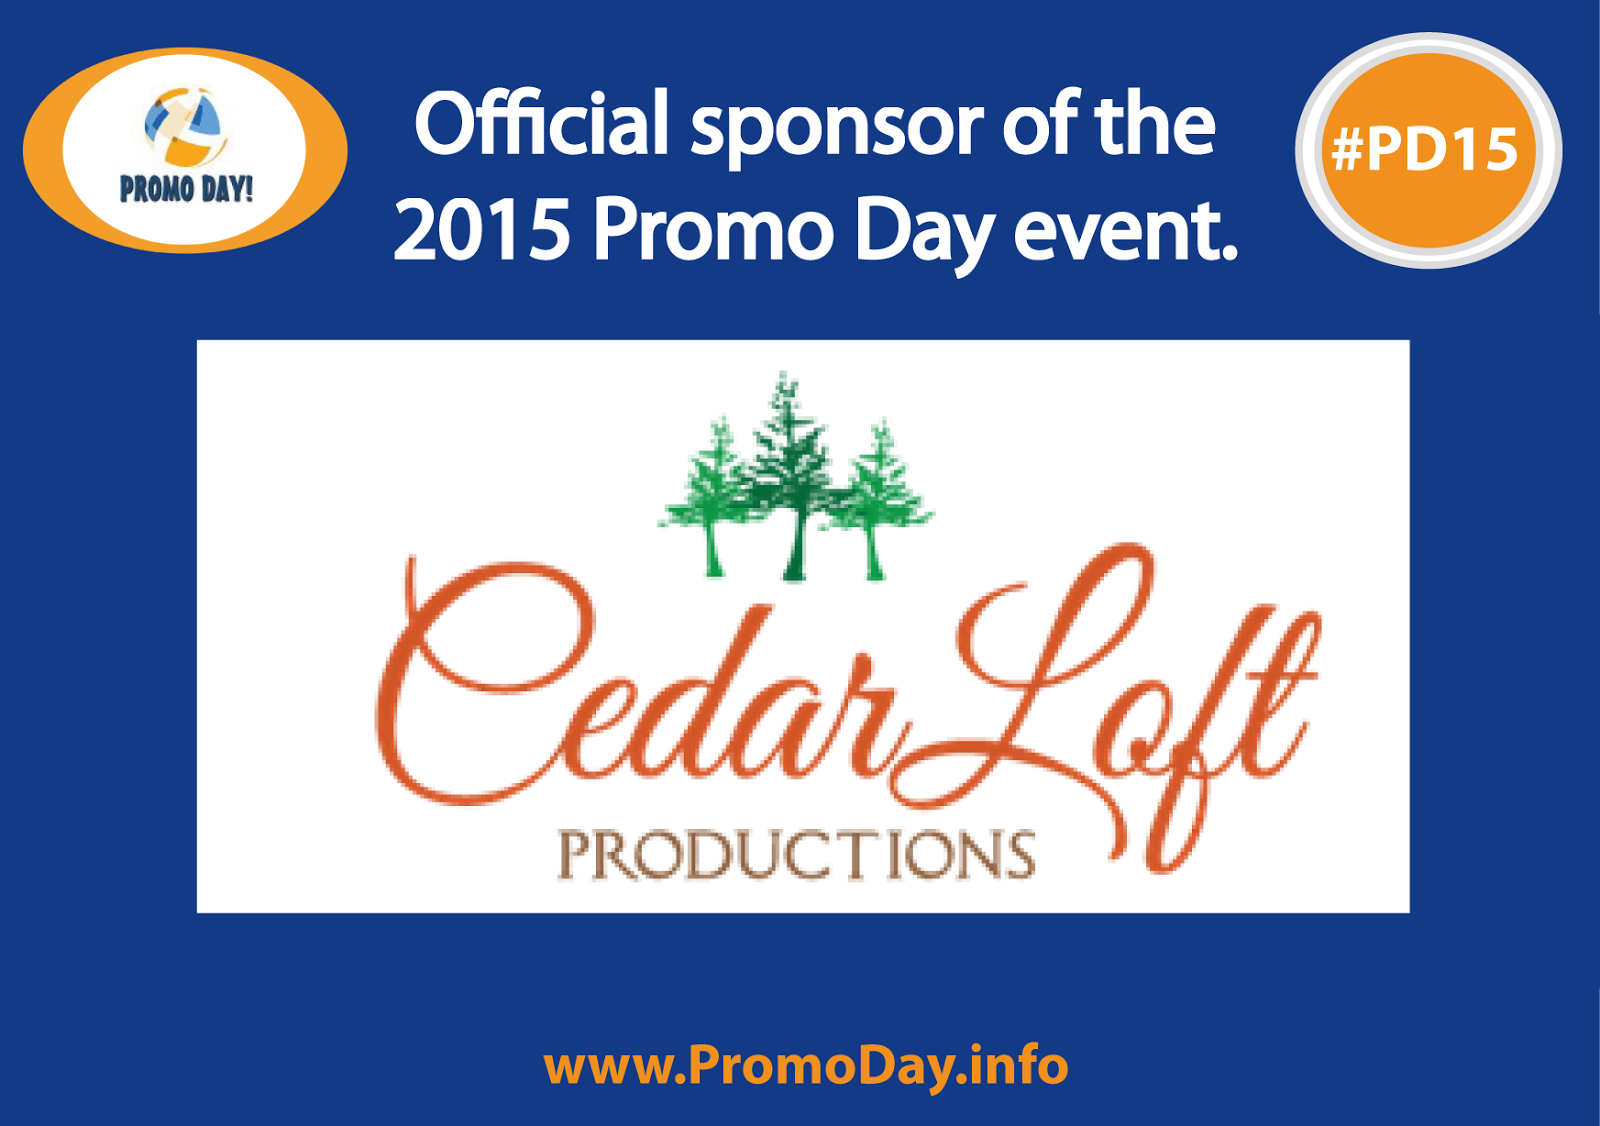 Official sponsor PD15, Promo Day, Cedar Loft Productions